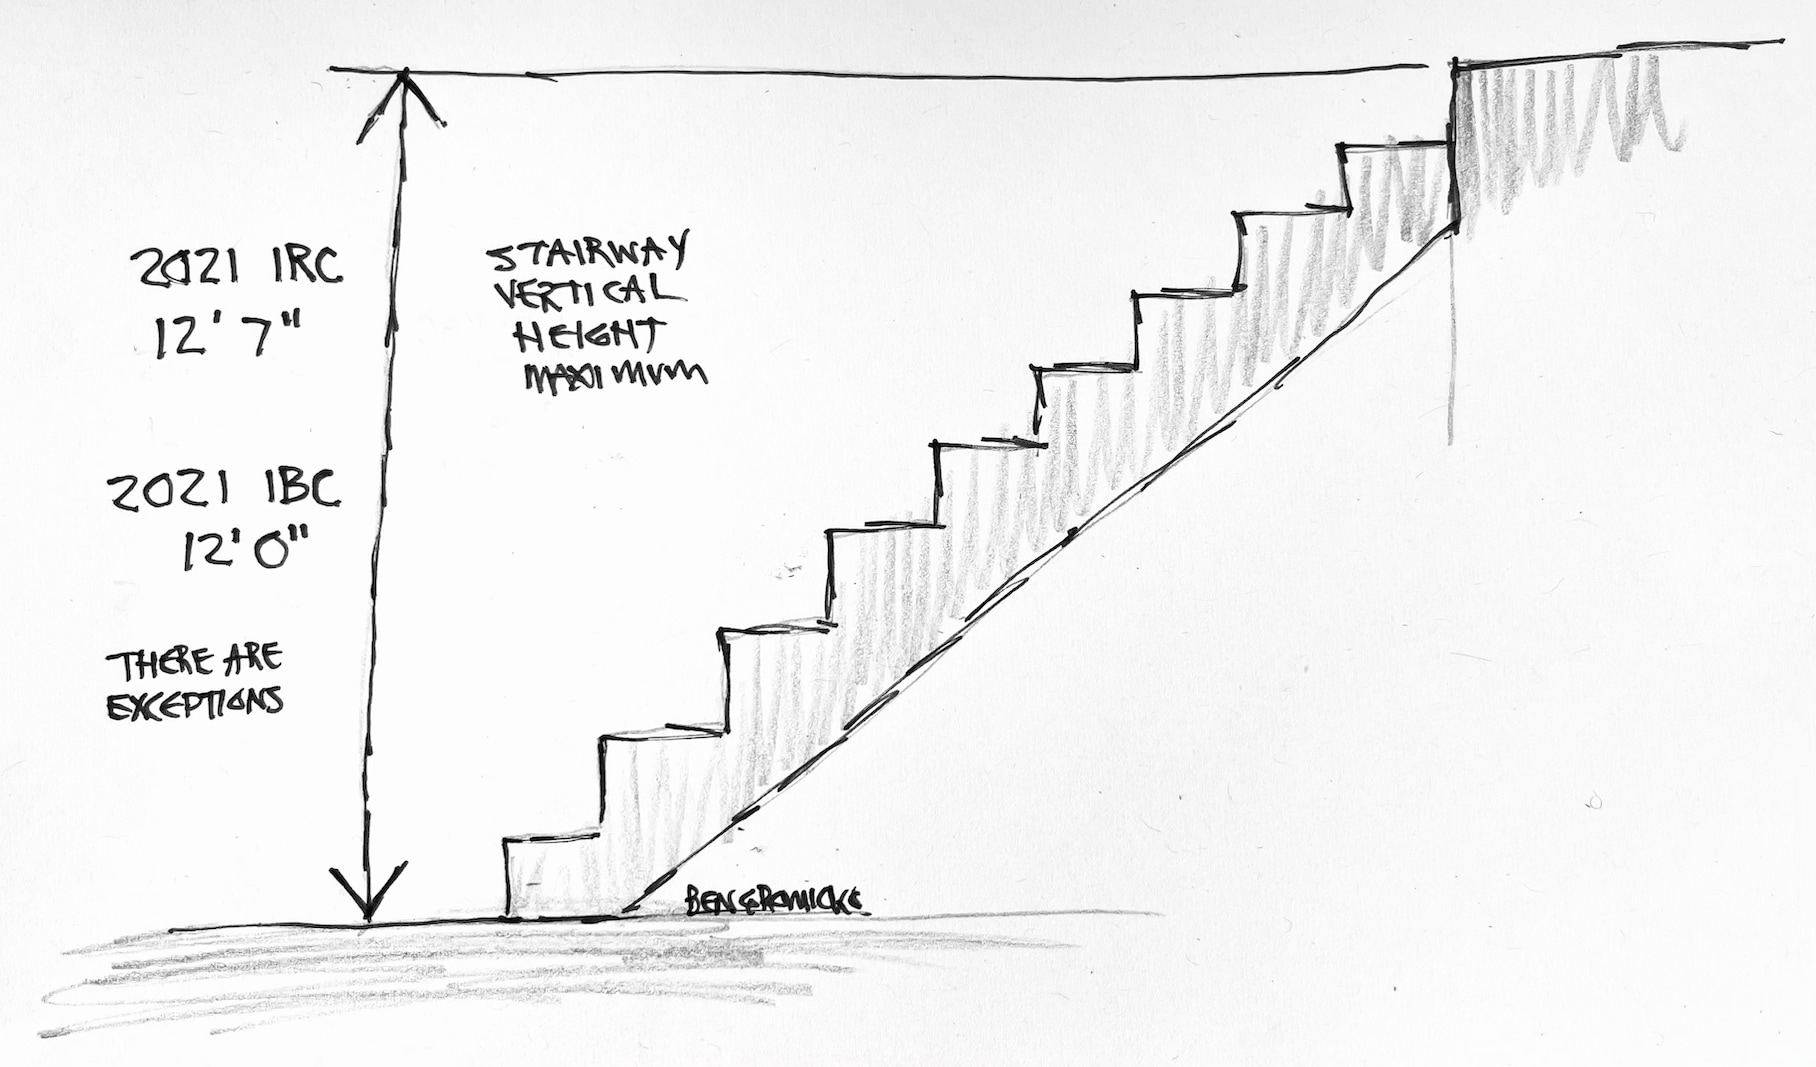 The 2021 IRC, R311.7.3, states that a flight of stairs shall not have a vertical rise greater than 12 feet 7 inches (3835 mm or 151 inches) between floor levels or landings. The code also states that there are exceptions to this vertical height limit. They are: (a) Stairways not within or serving a building, porch, or deck; (b) Stairways leading to non-habitable attics; and (c) Stairways leading to crawl spaces. The 2021 IBC, Section 1011.8, states that a flight of stairs should not have a vertical rise greater than 12 feet (3658 mm or 144 inches). The vertical height is measured from one landing walking surface to another.